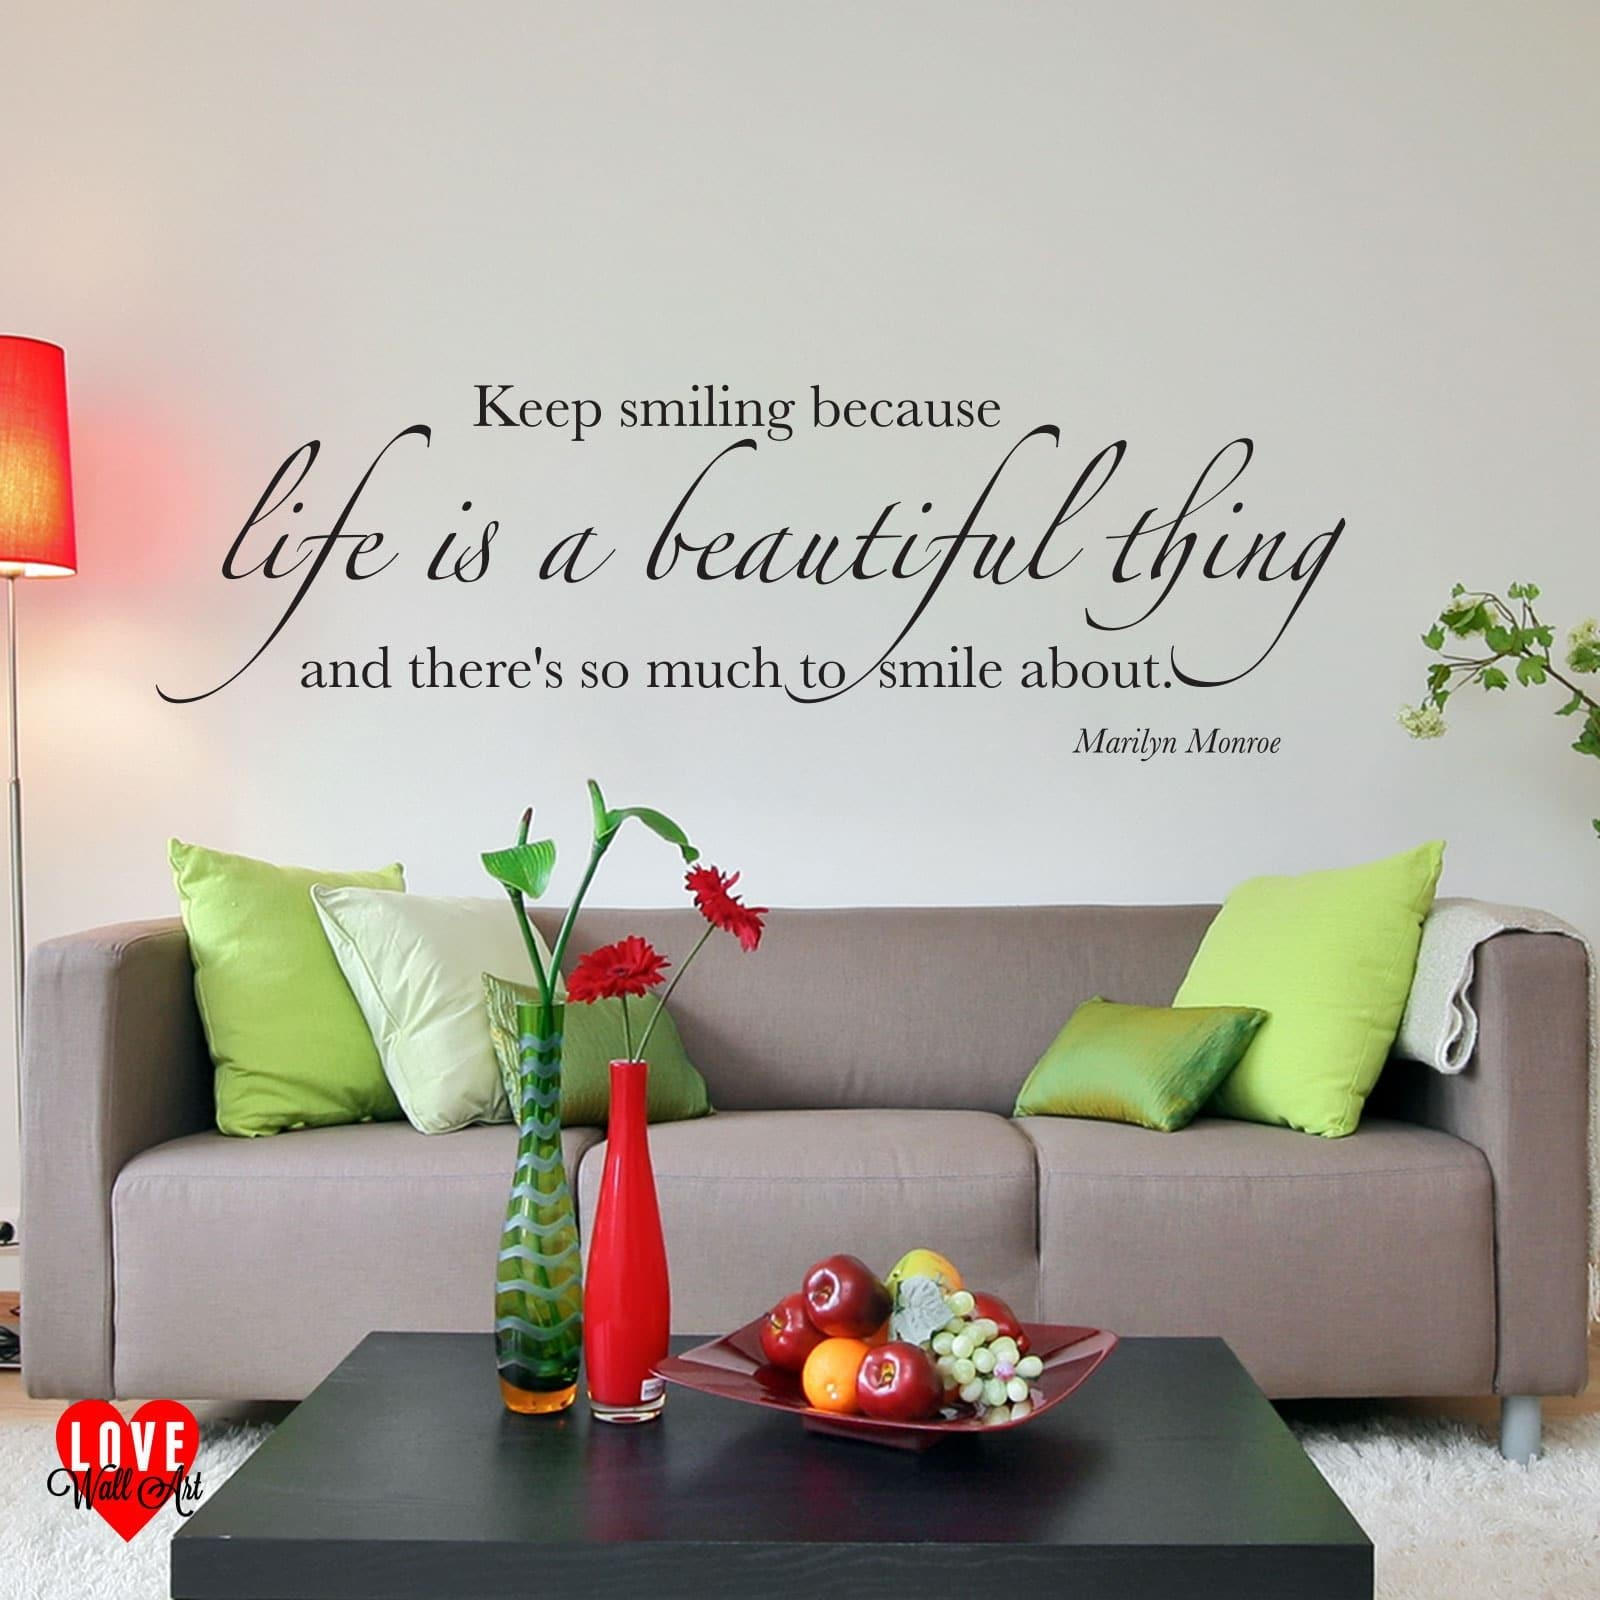 Is A Beautiful Thing Marilyn Monroe Quote Wall Art Sticker intended for Marilyn Monroe Wall Art Quotes